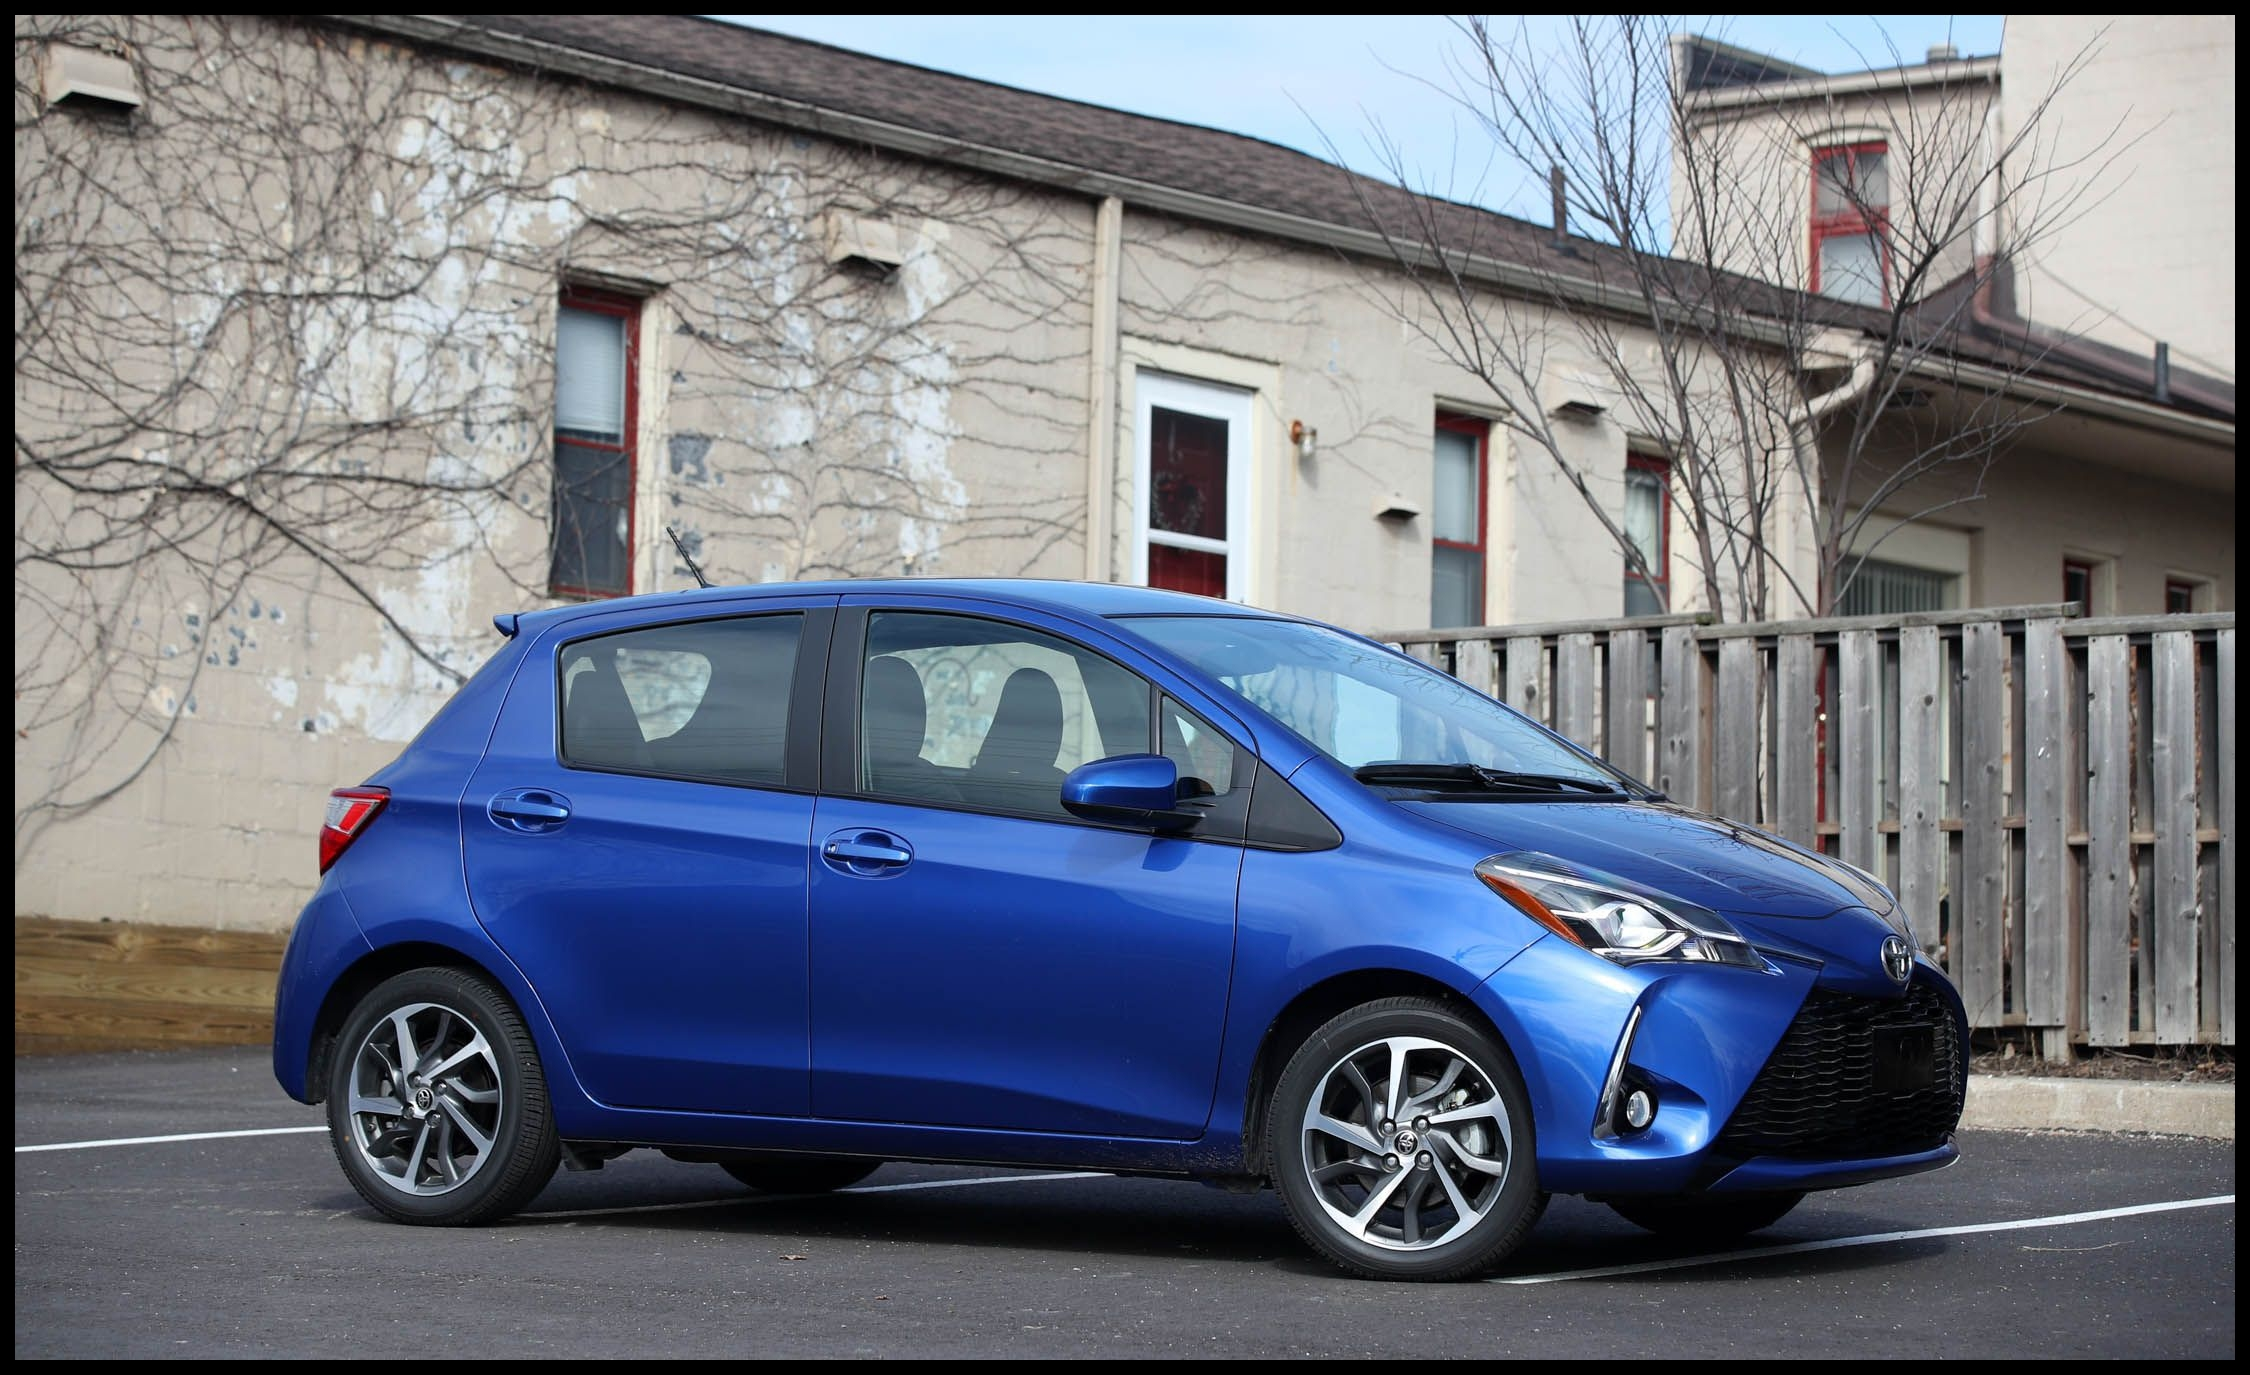 Toyota Yaris Reviews Toyota Yaris Price s and Specs